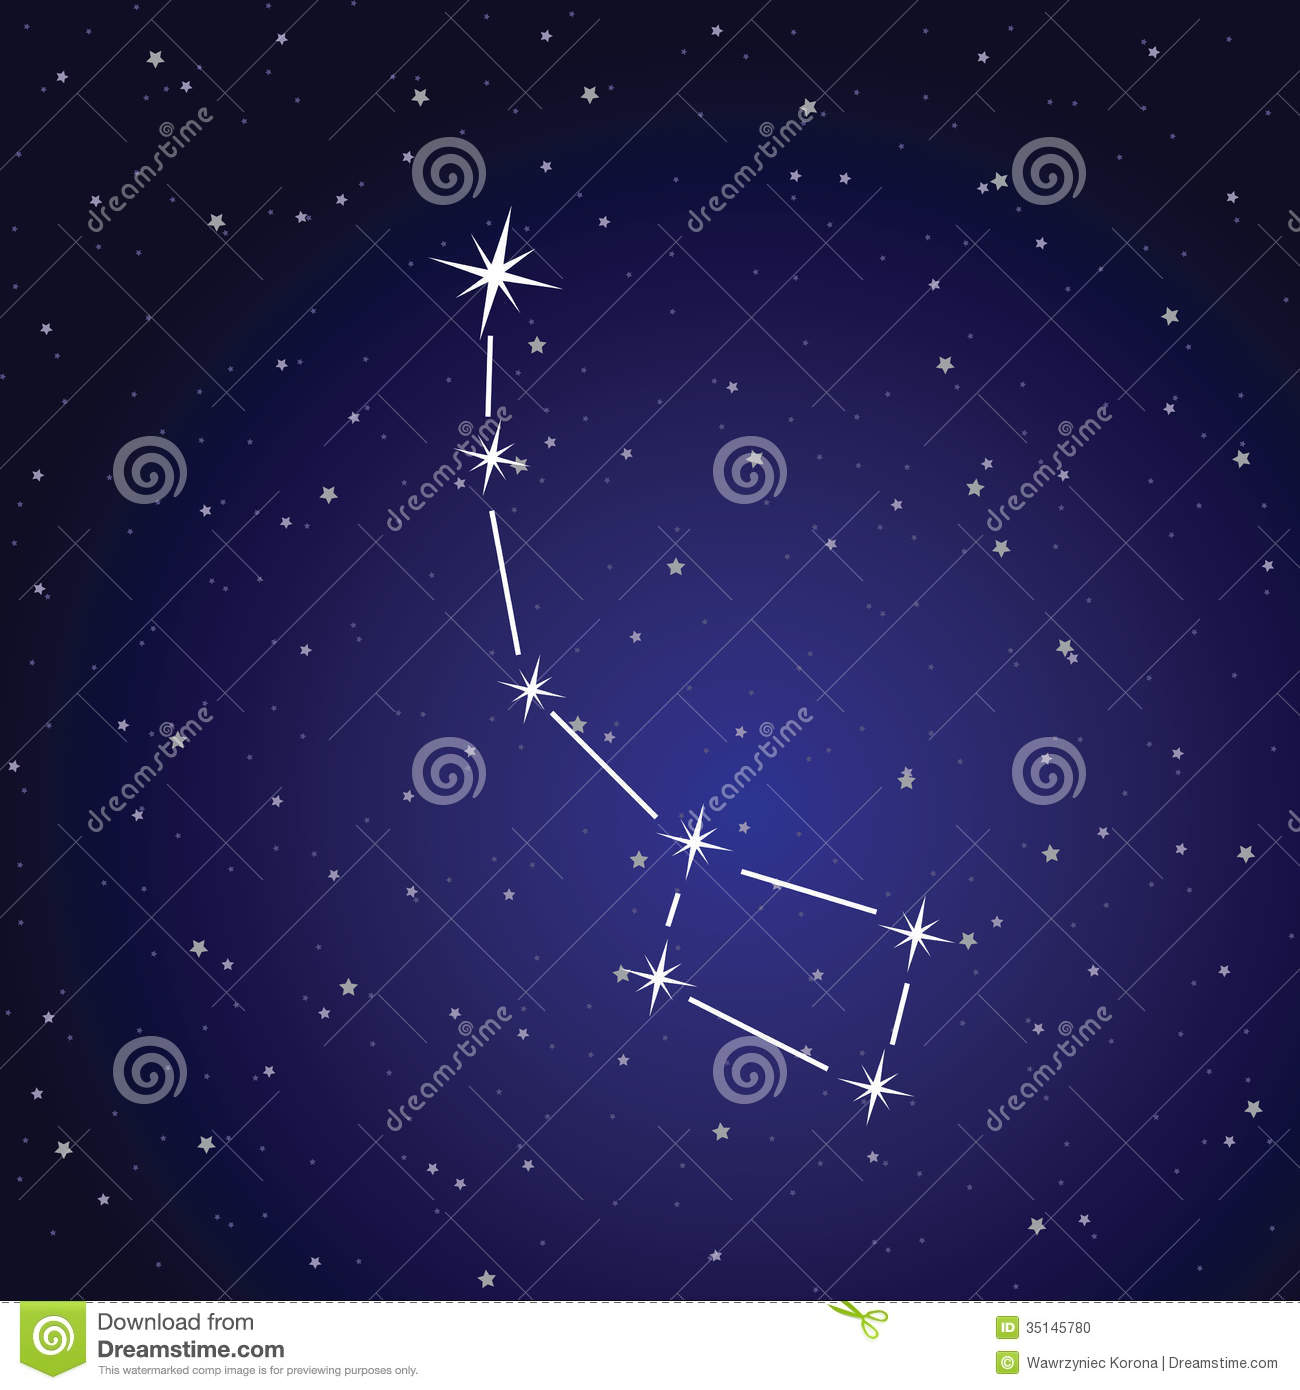 Constellations Ursa Major And Minor ursa minor constellation